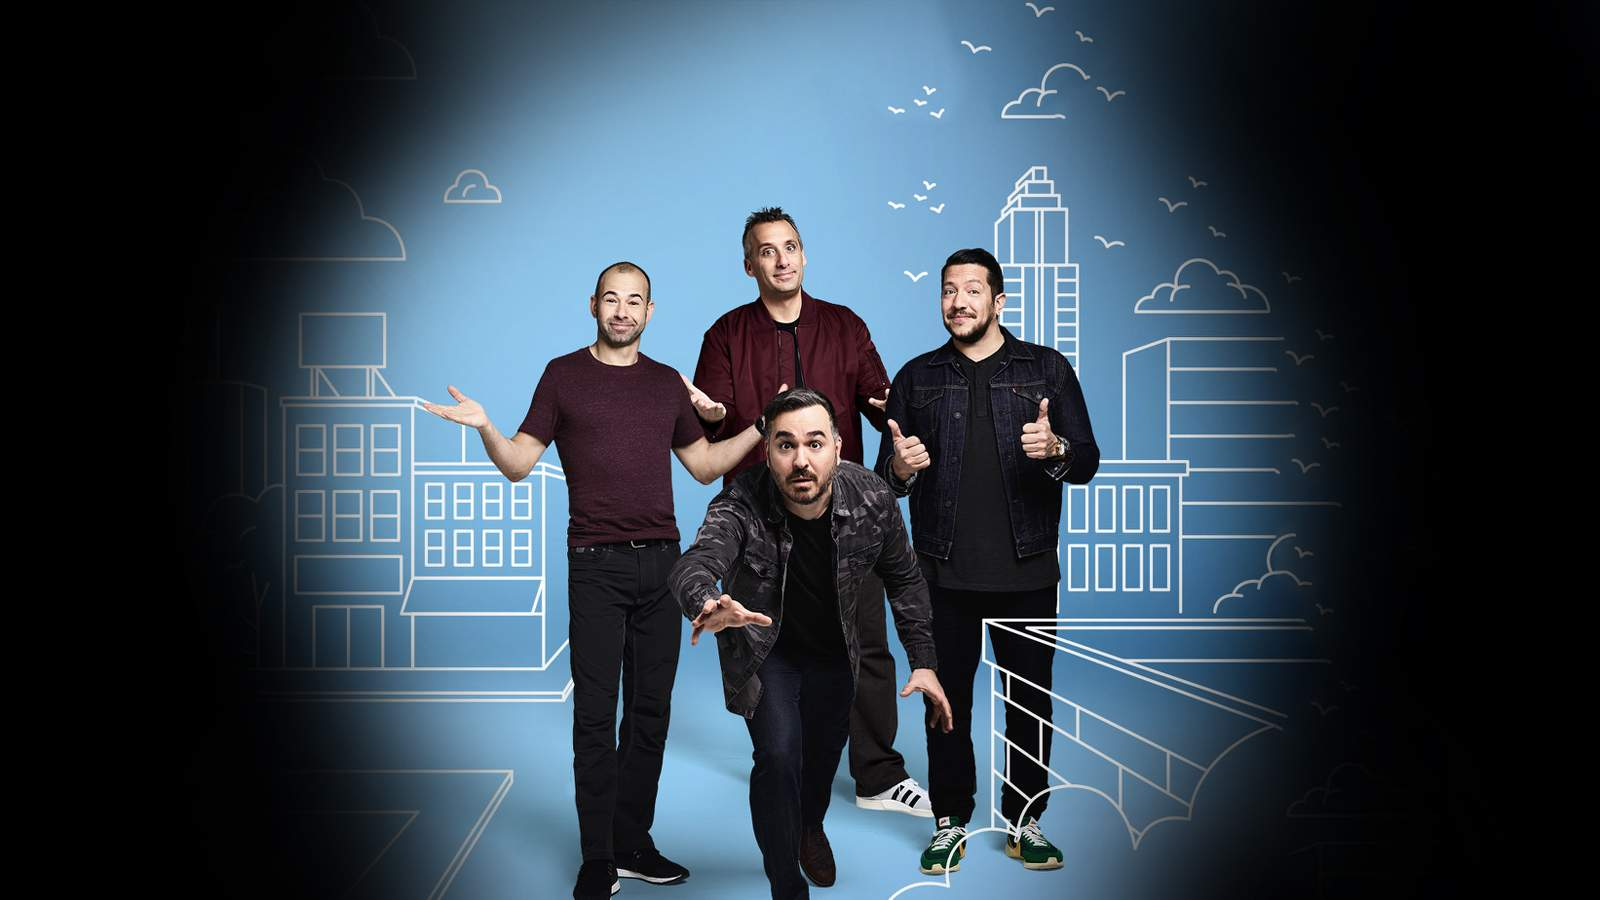 Impractical Jokers (16+ Event) (Rescheduled from 7/18/2020)